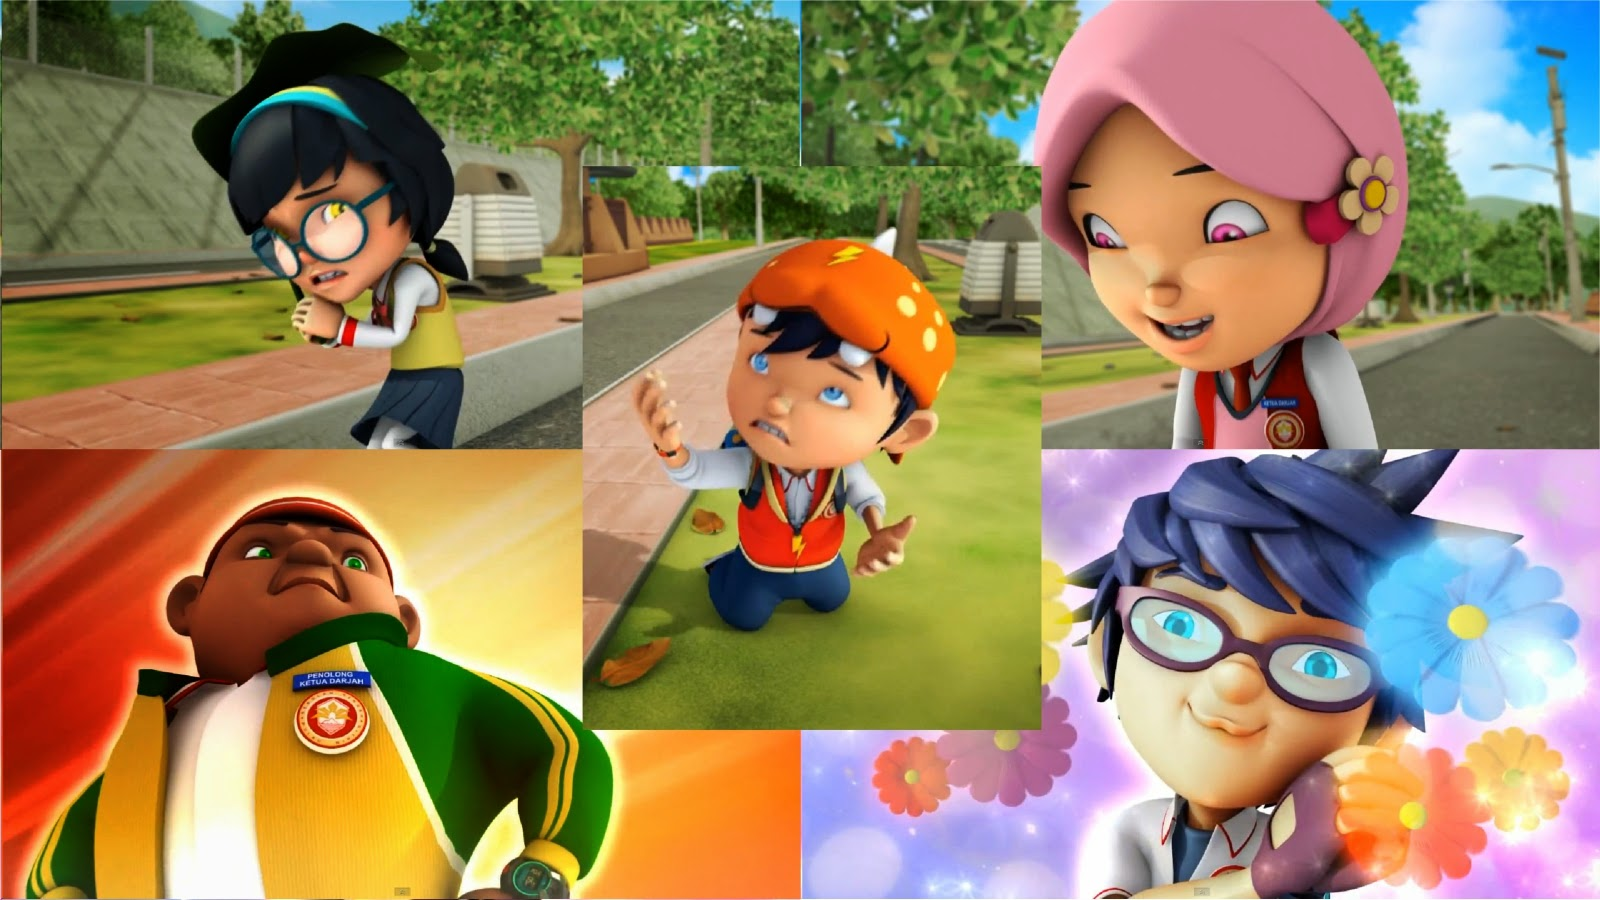 http://gallerycartoon.blogspot.com/2015/03/boboiboy-cartoon-gallery-5.html